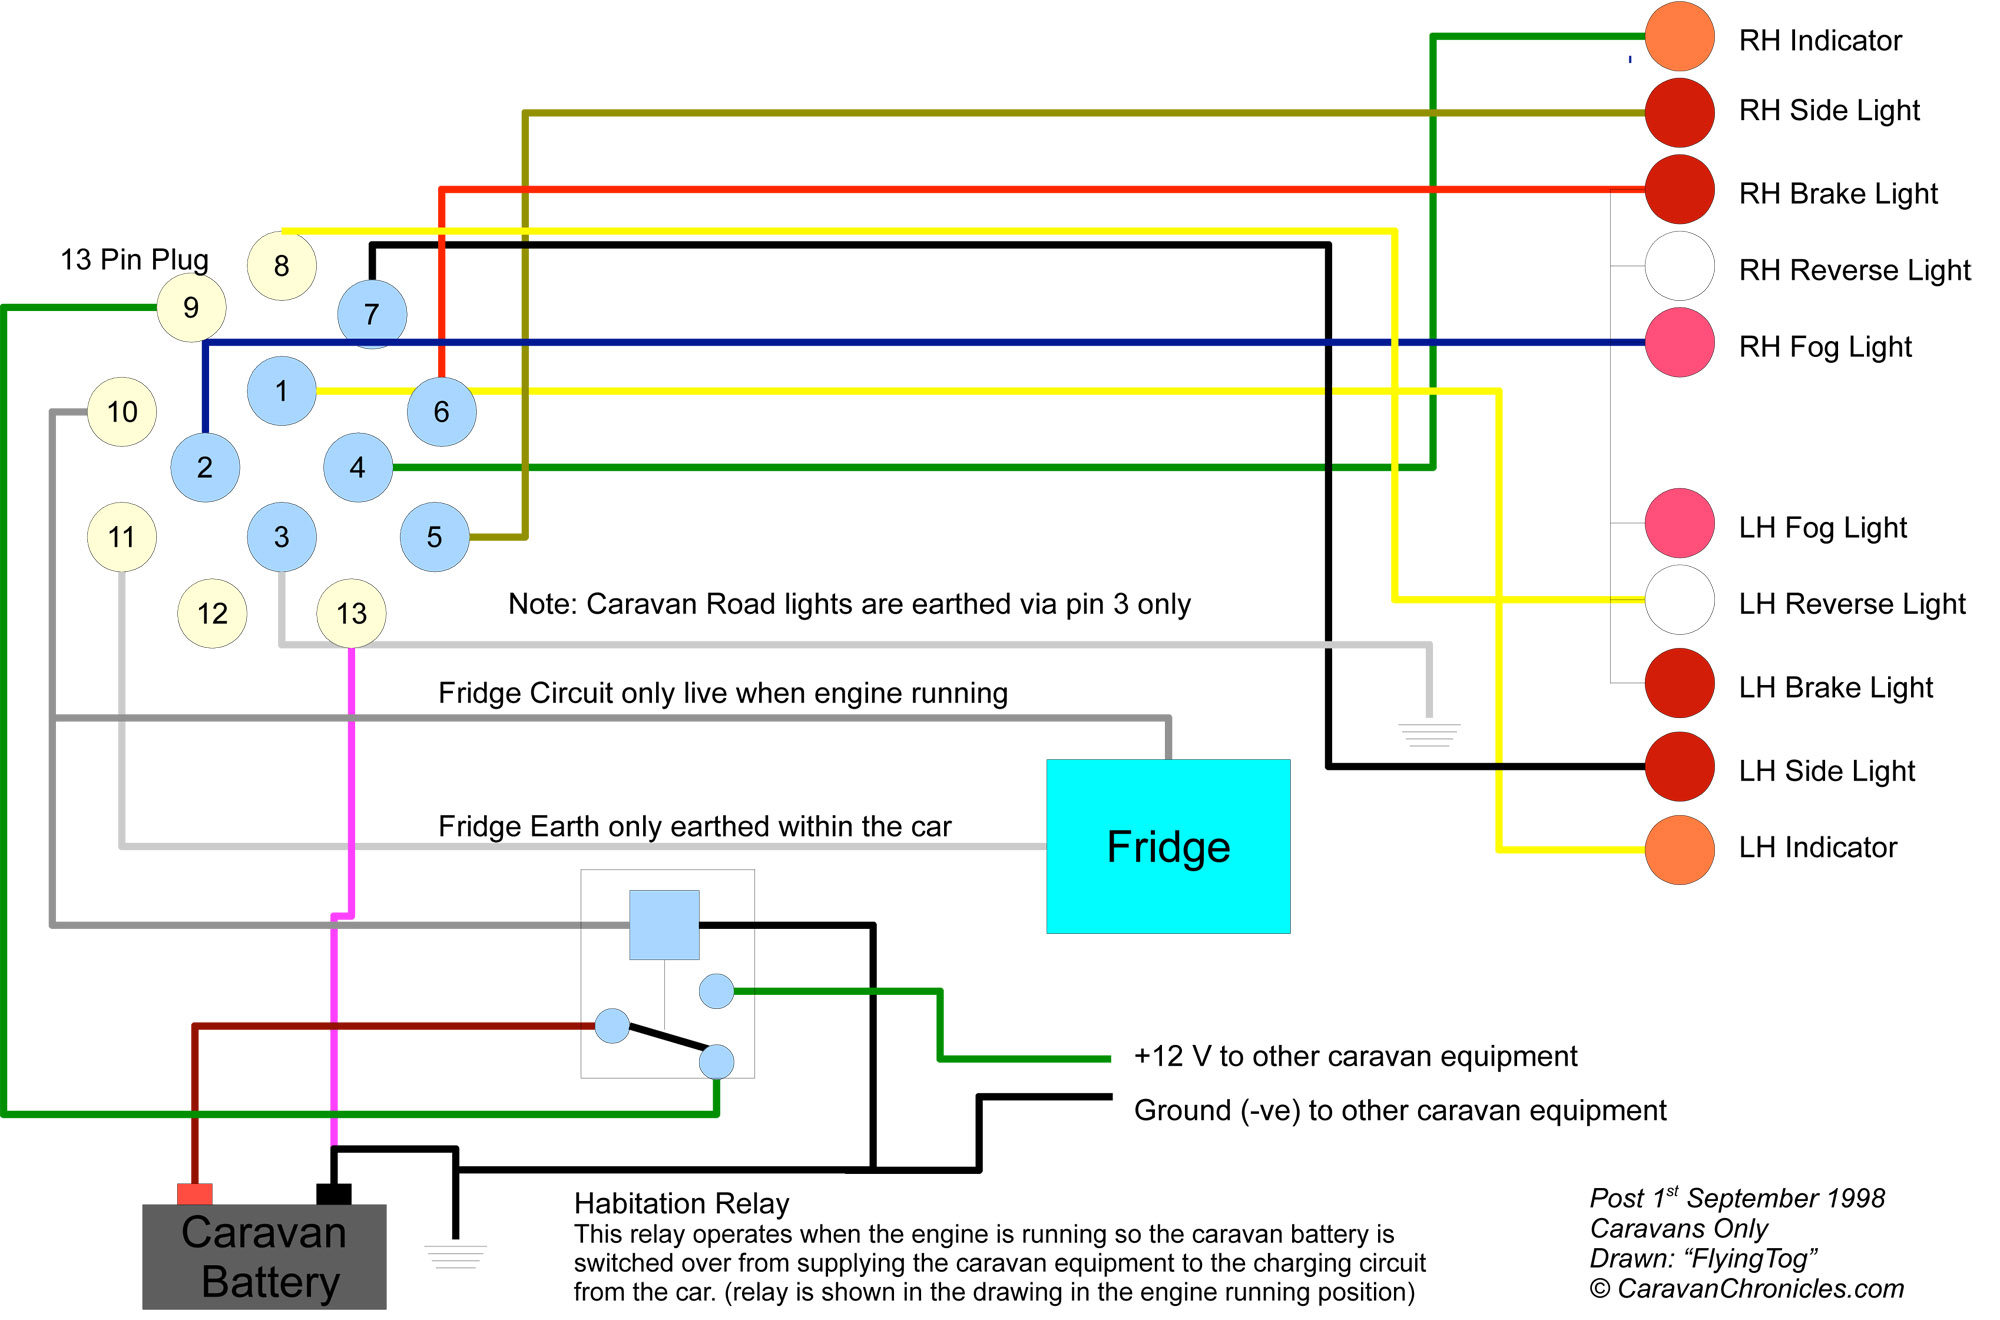 caravan wiring 13 pin understanding the leisure battery charging circuit caravan tec3 split charge relay wiring diagram at bayanpartner.co